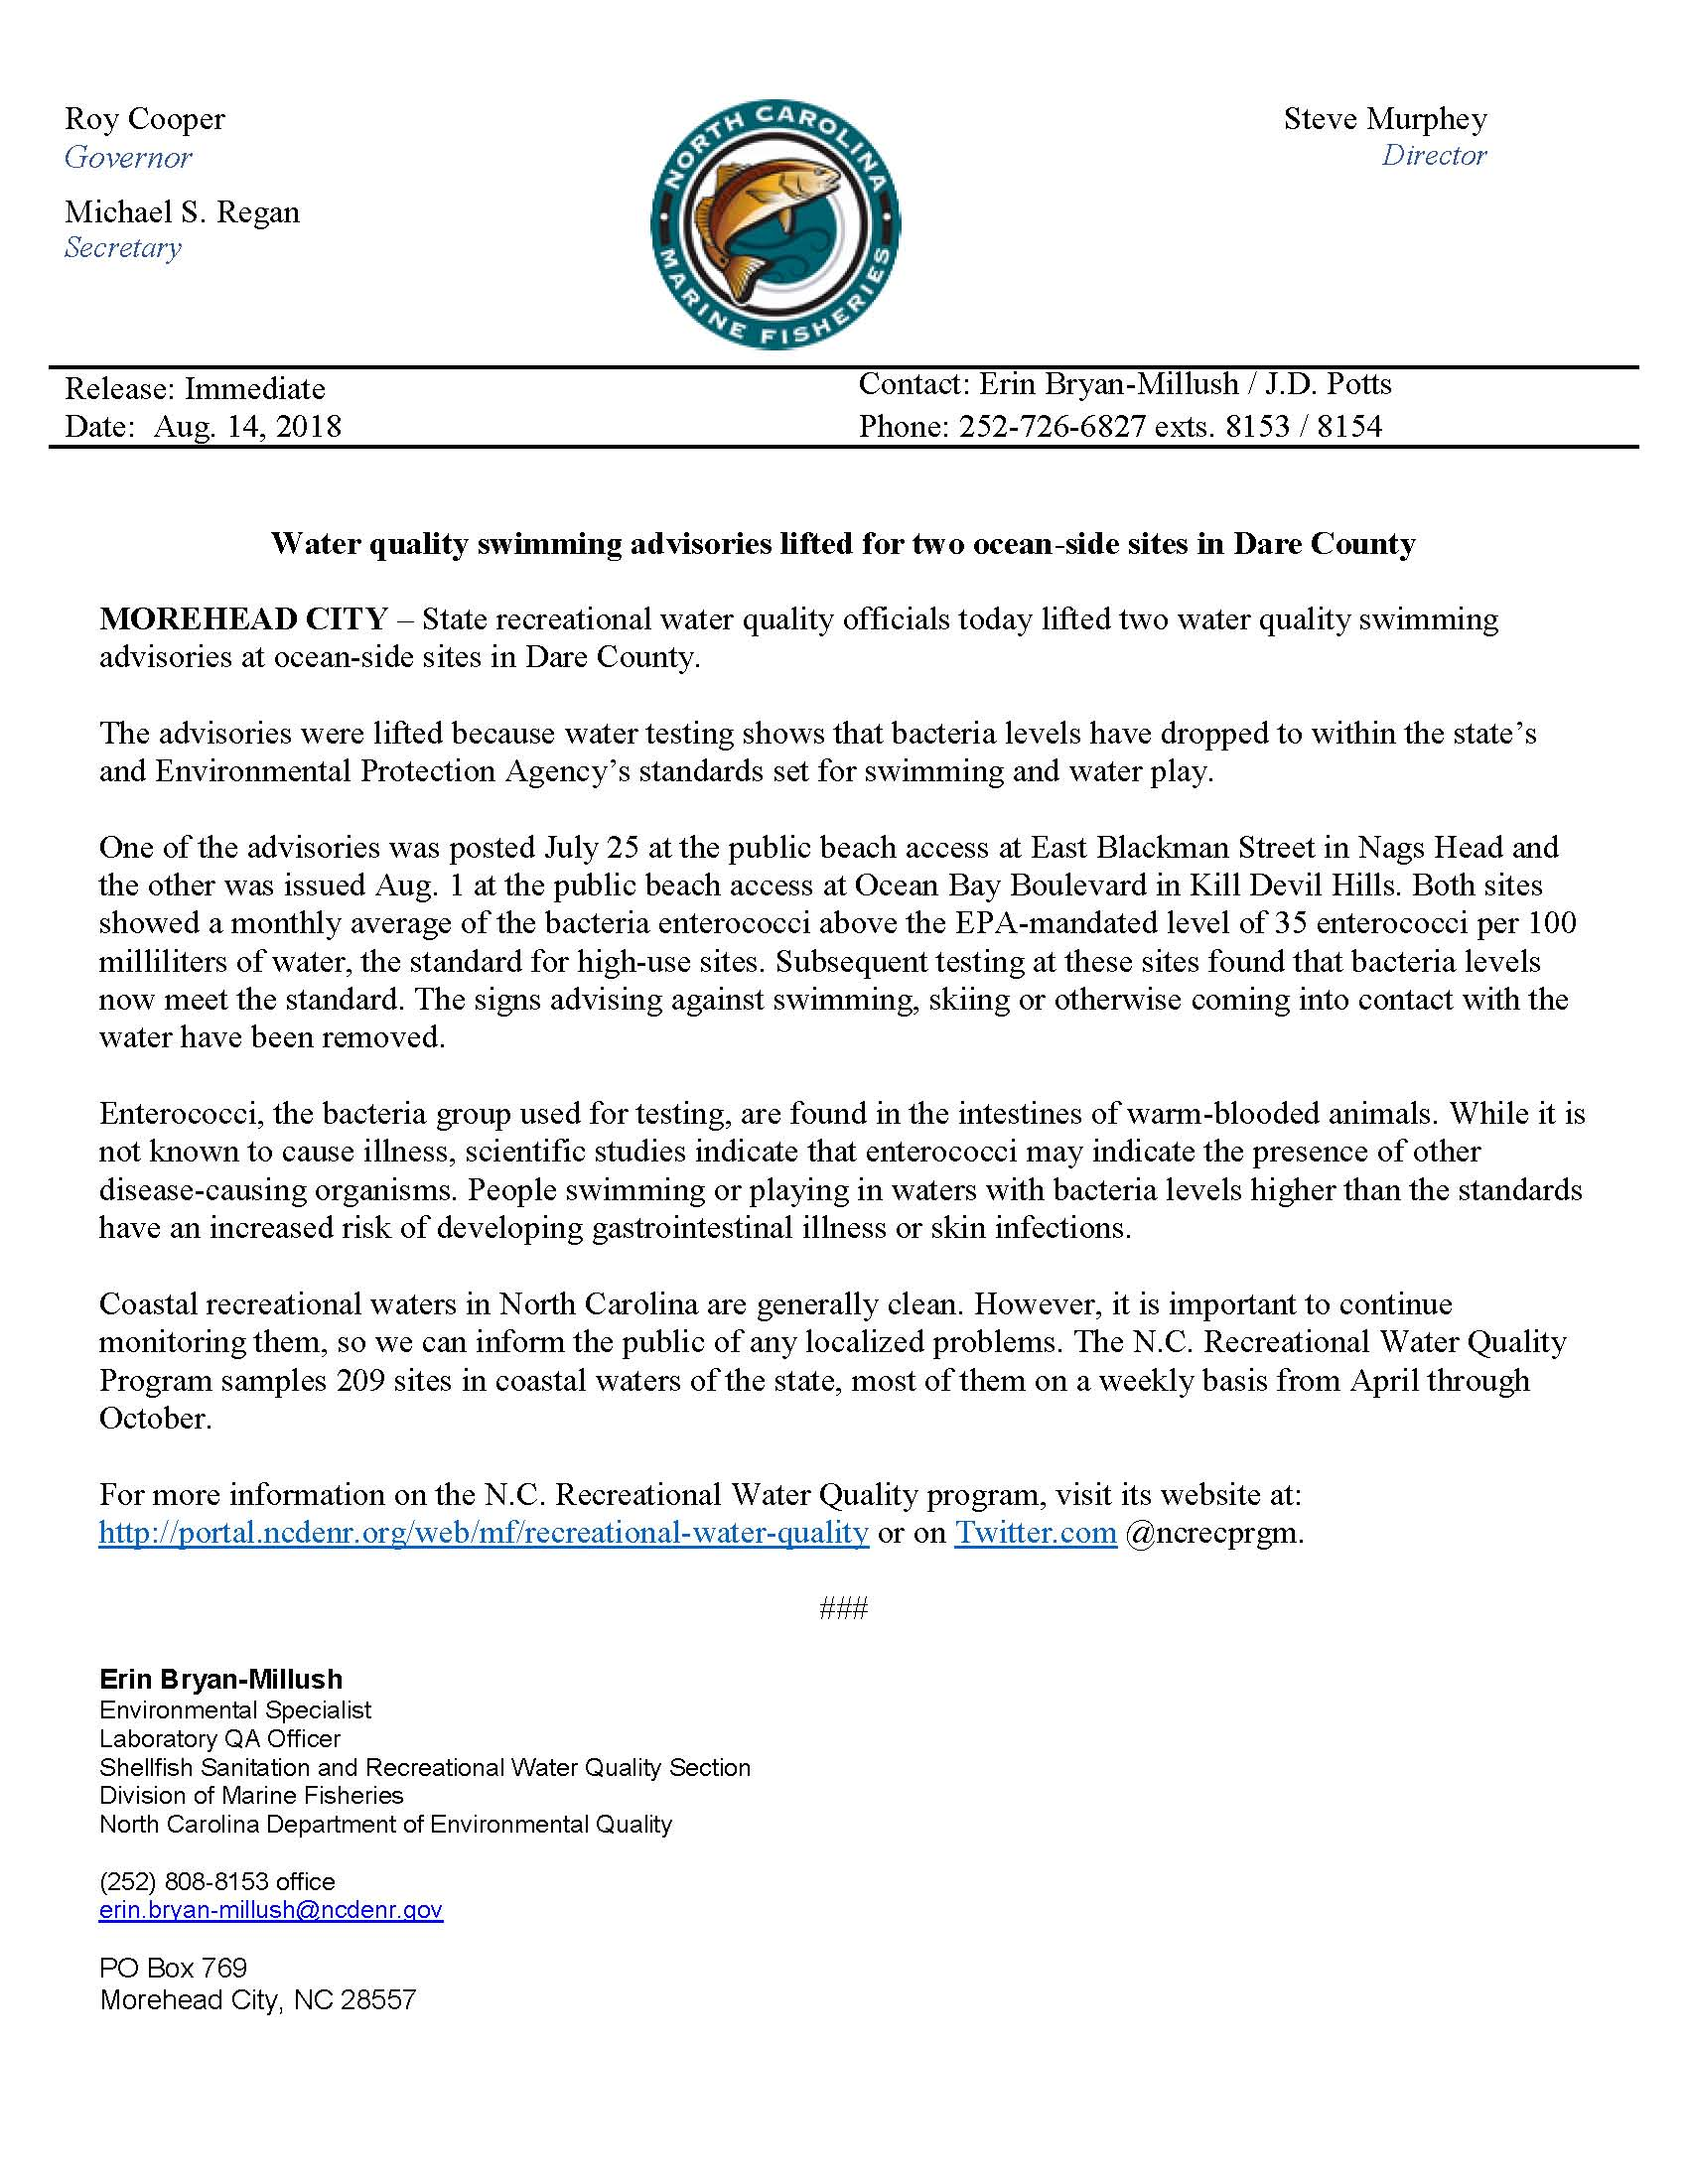 8.14.2018 NCEQ Swimming Advisory Lifted for Sites in Dare County